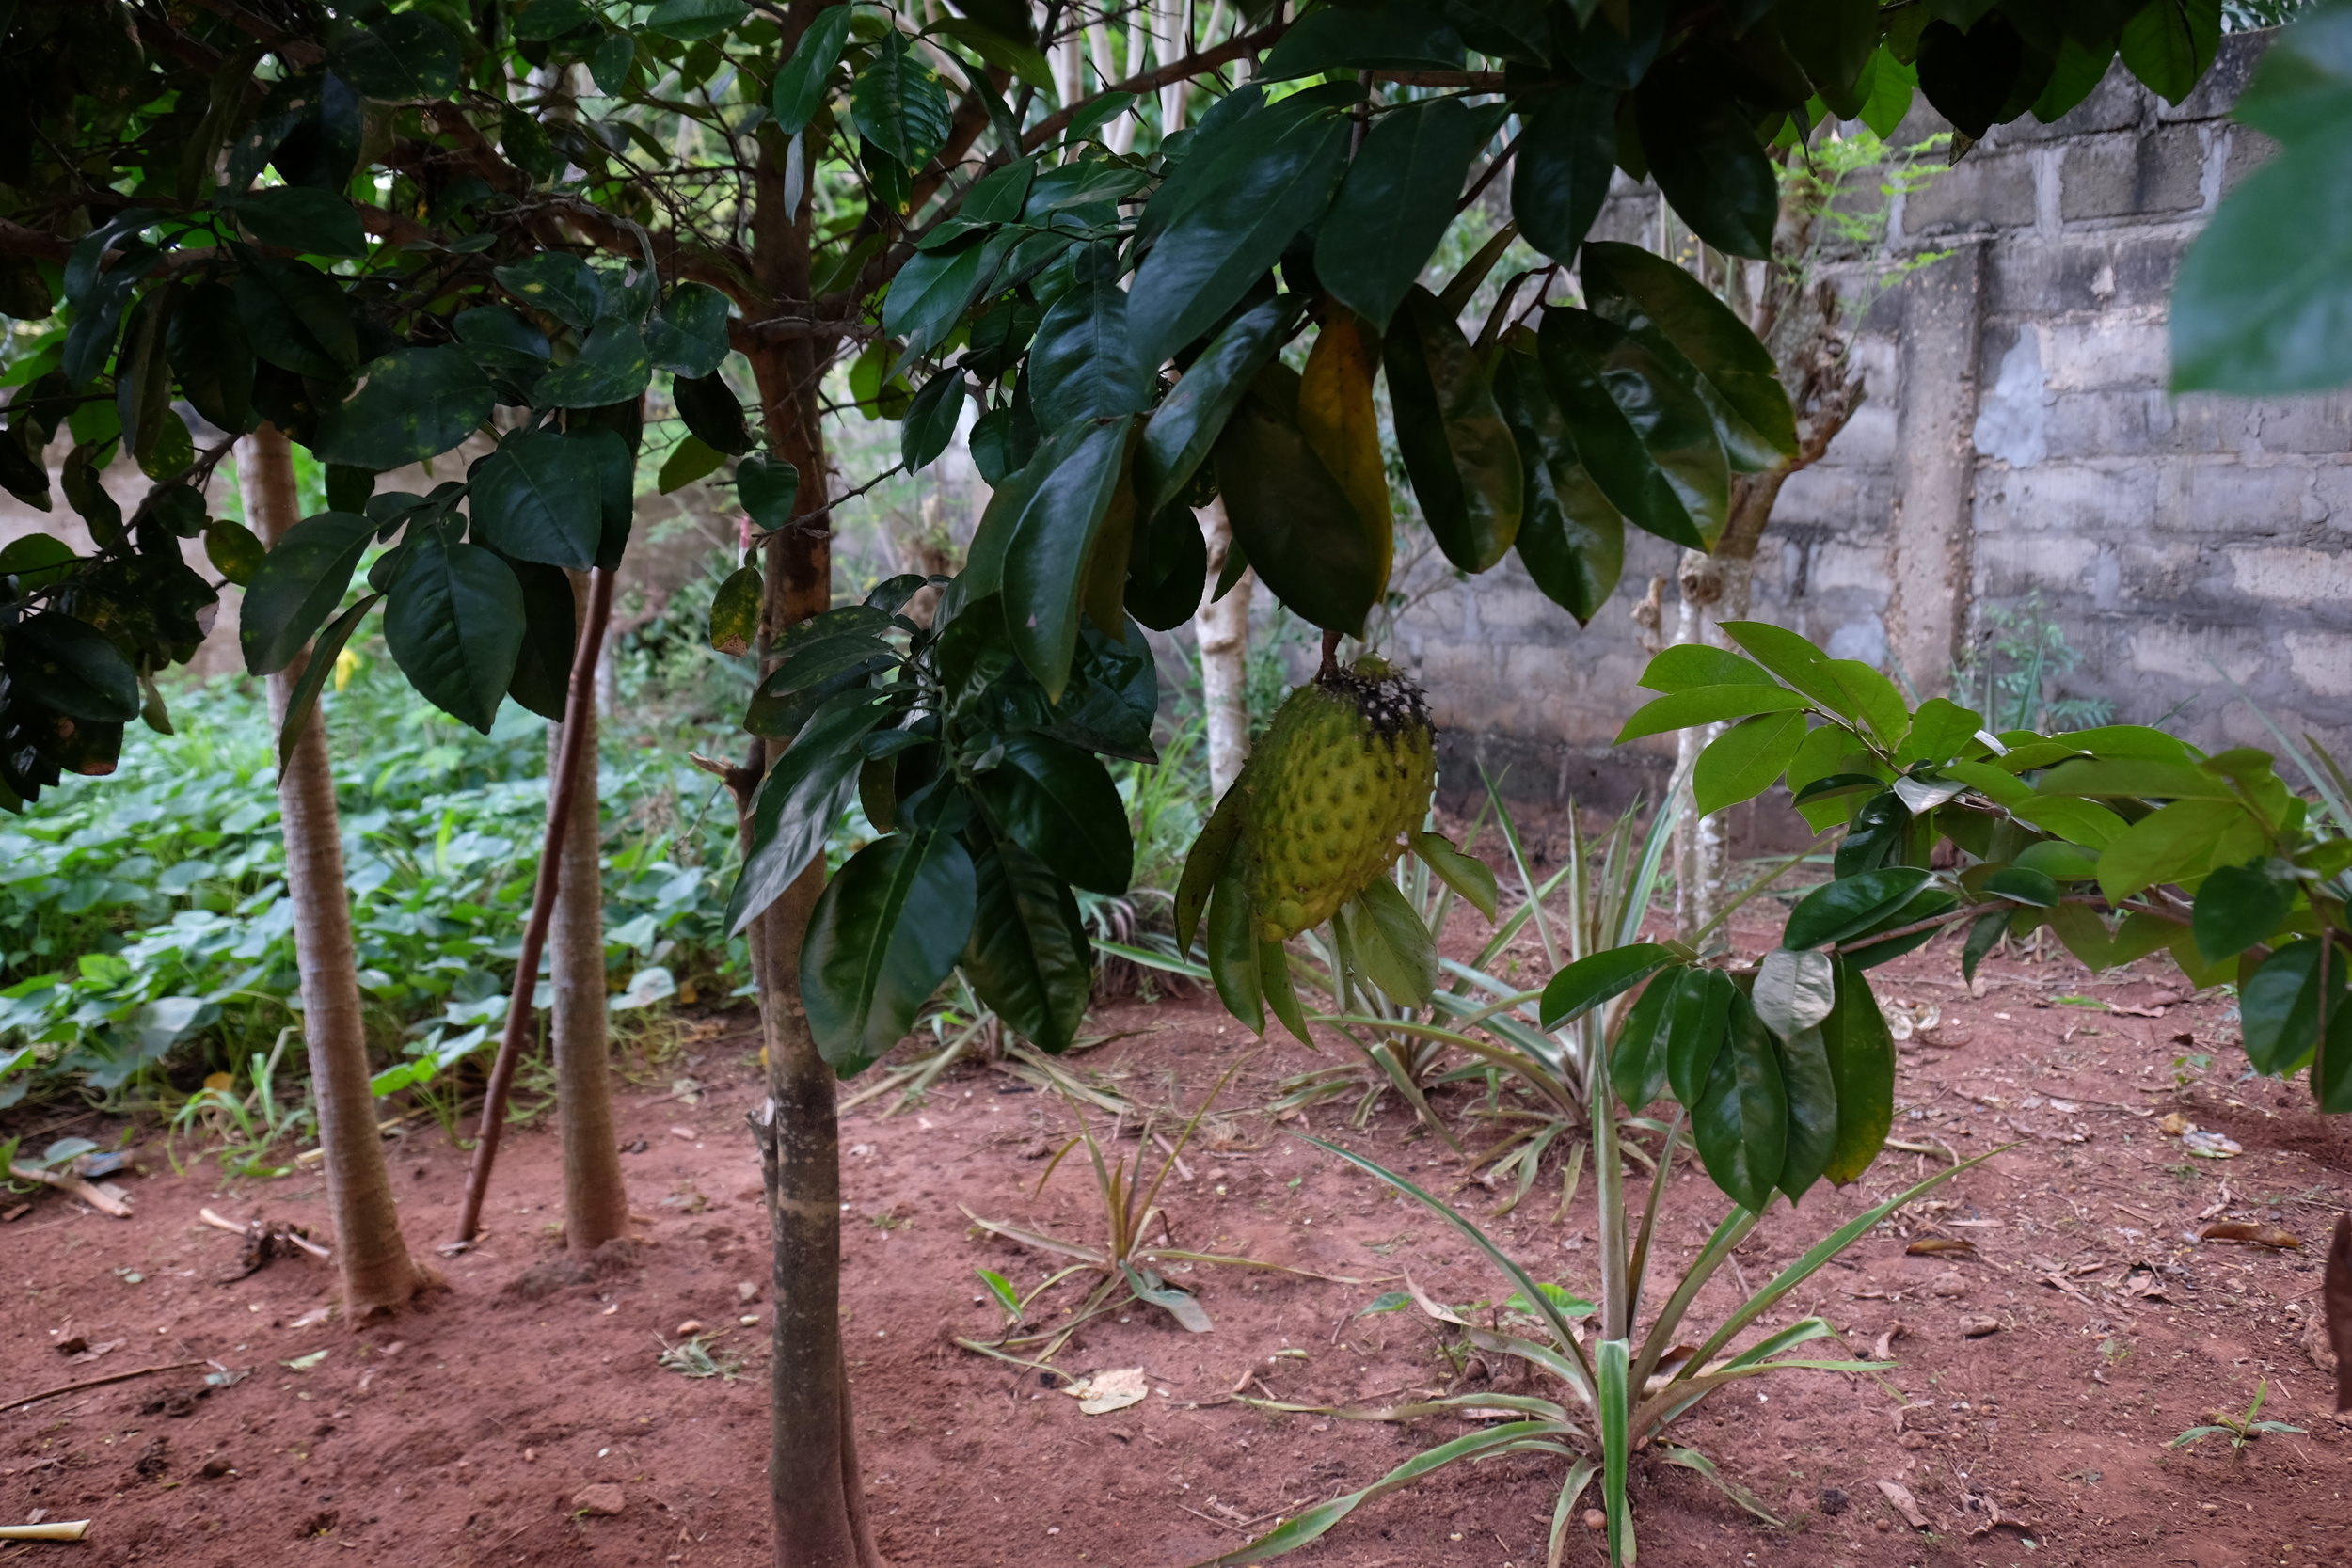 This fruit is called a  soursop , and it's one of the newer additions to the garden! It's surprisingly massive for how small the tree itself is, and it tasted really good—tart and sweet.